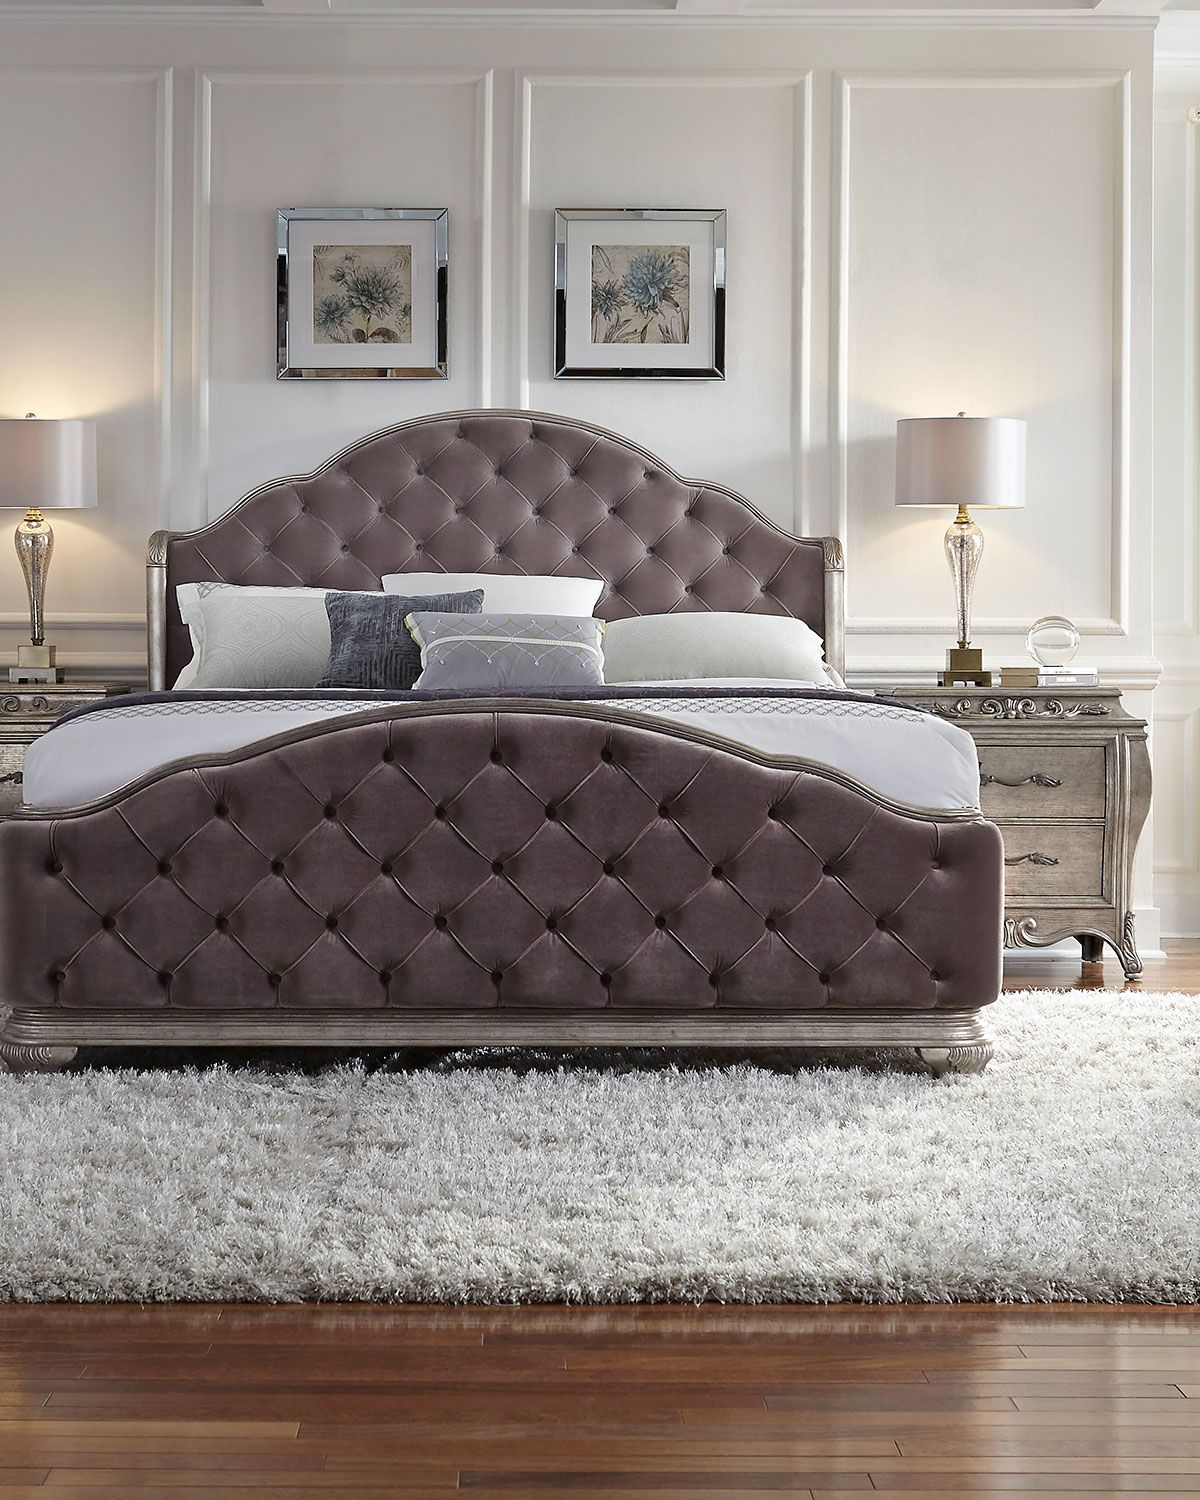 bella terra tufted king bed king beds bedrooms and master bedroom